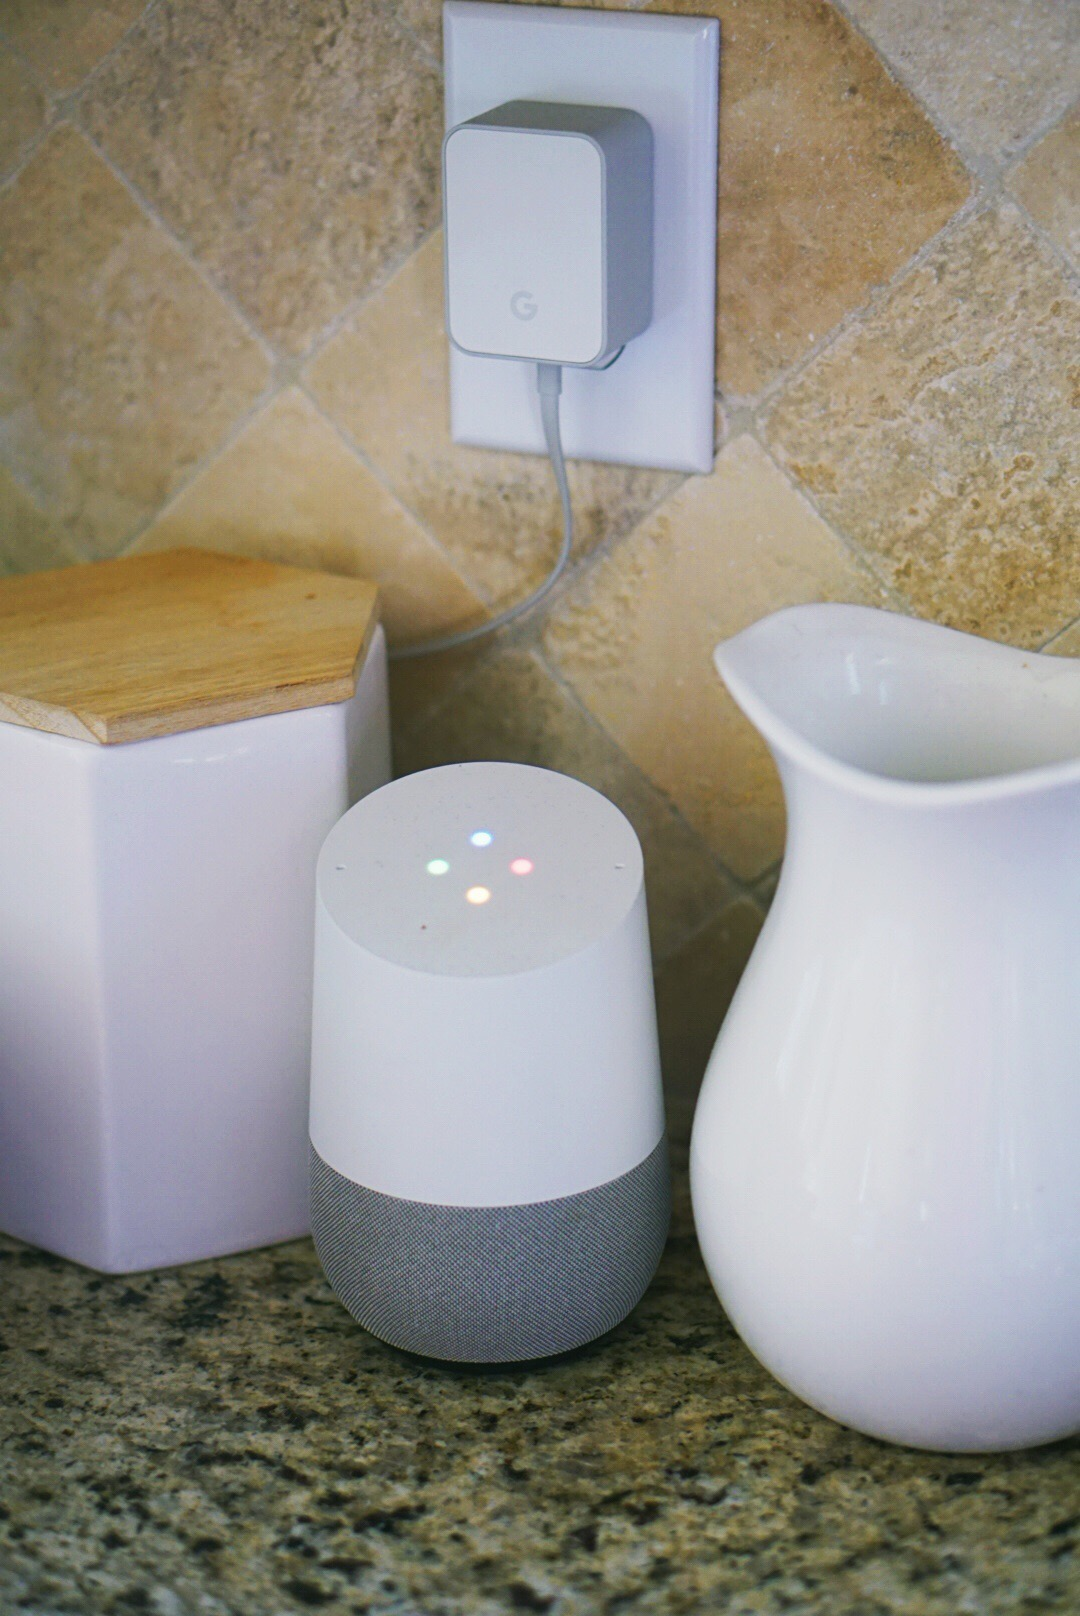 Kitchen Essentials - Google Home Speaker - You Can Shop For no eBay - ebay home goods via Misty Nelson, lifestyle blogger ad parenting influencer mom at frostedblog @frostedevents